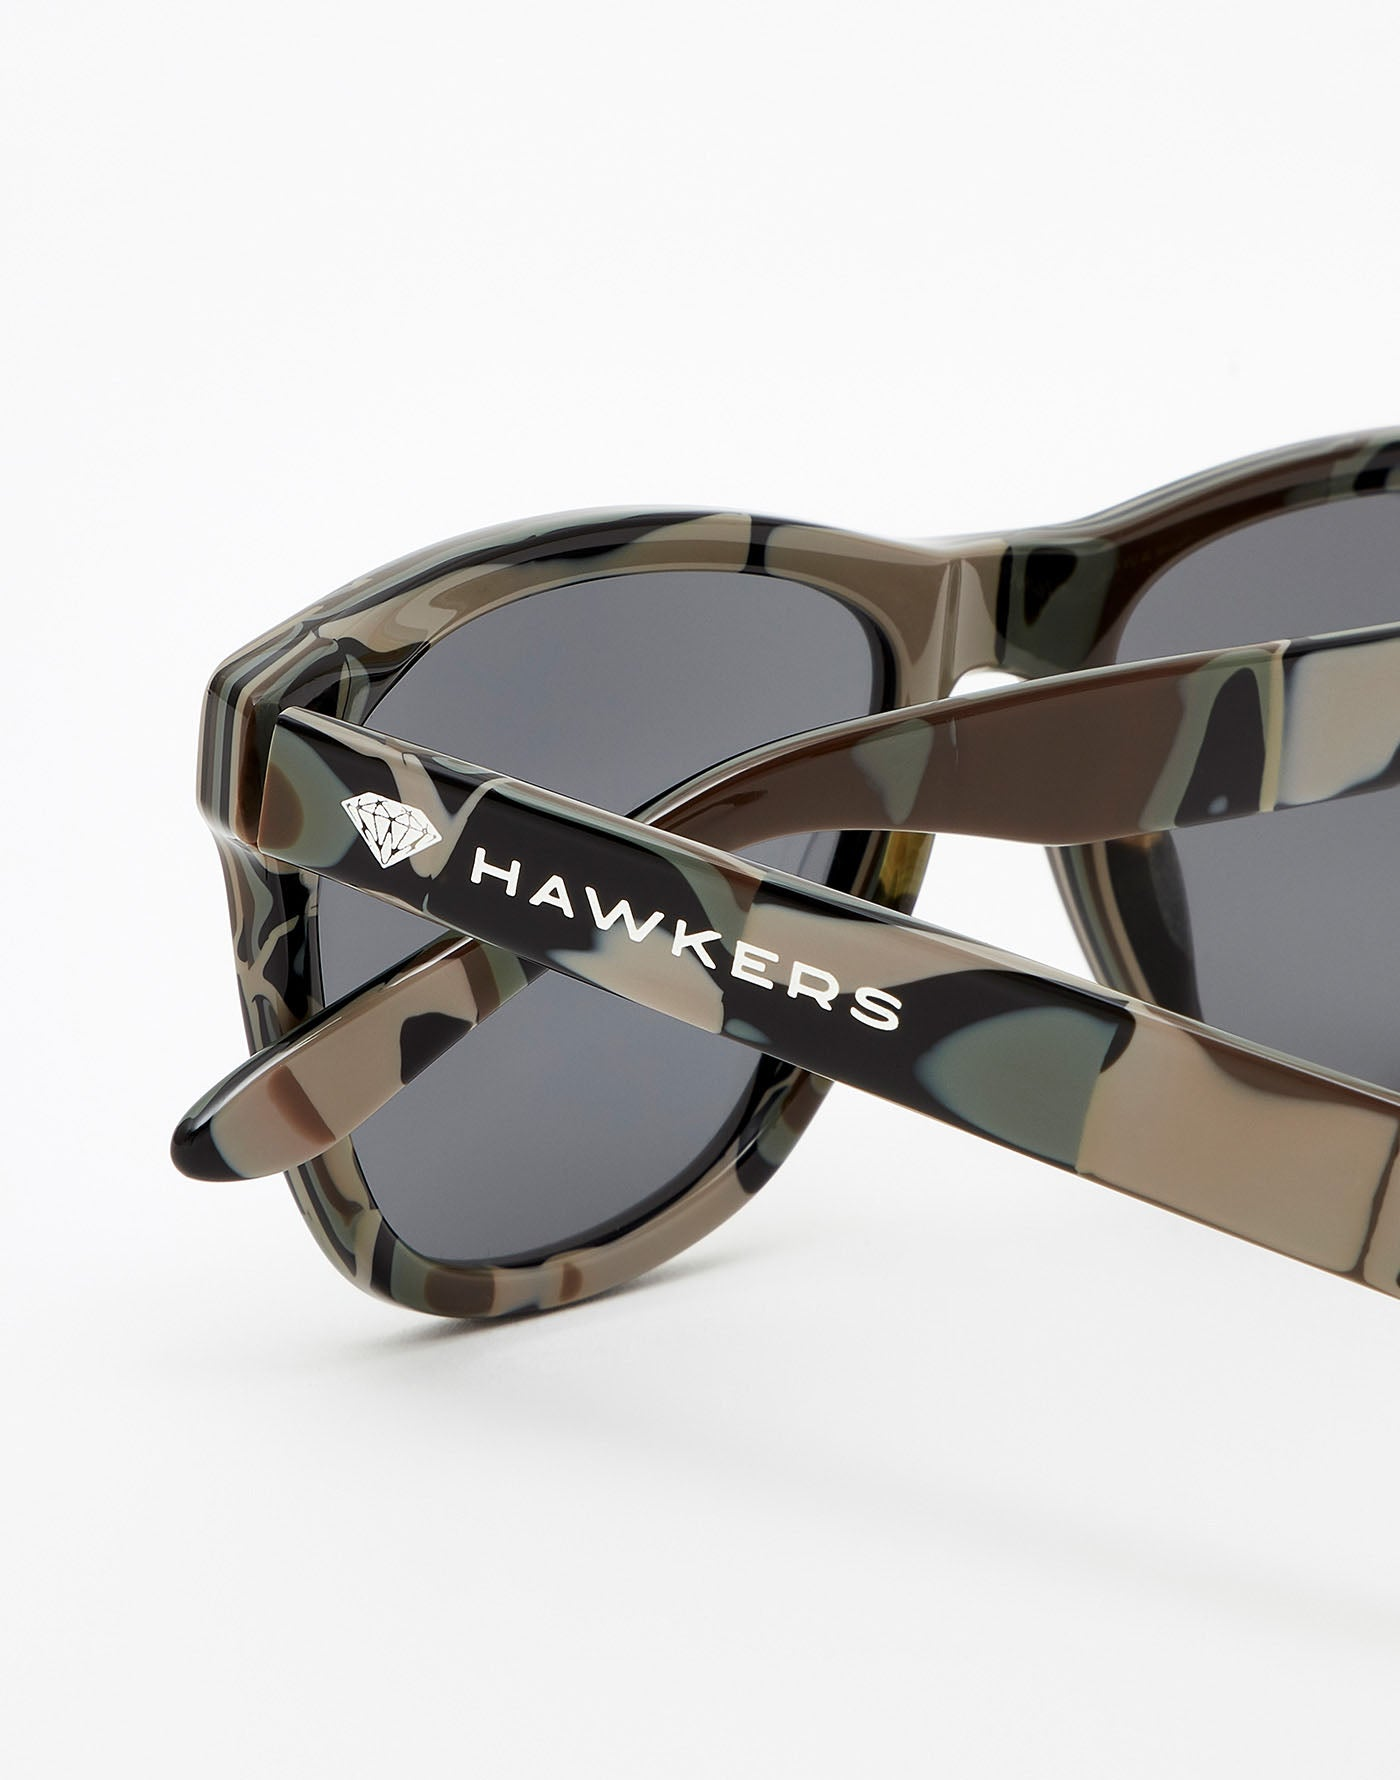 08c3e999ab 💎 Gafas de Sol Hawkers x Diamond One 💎